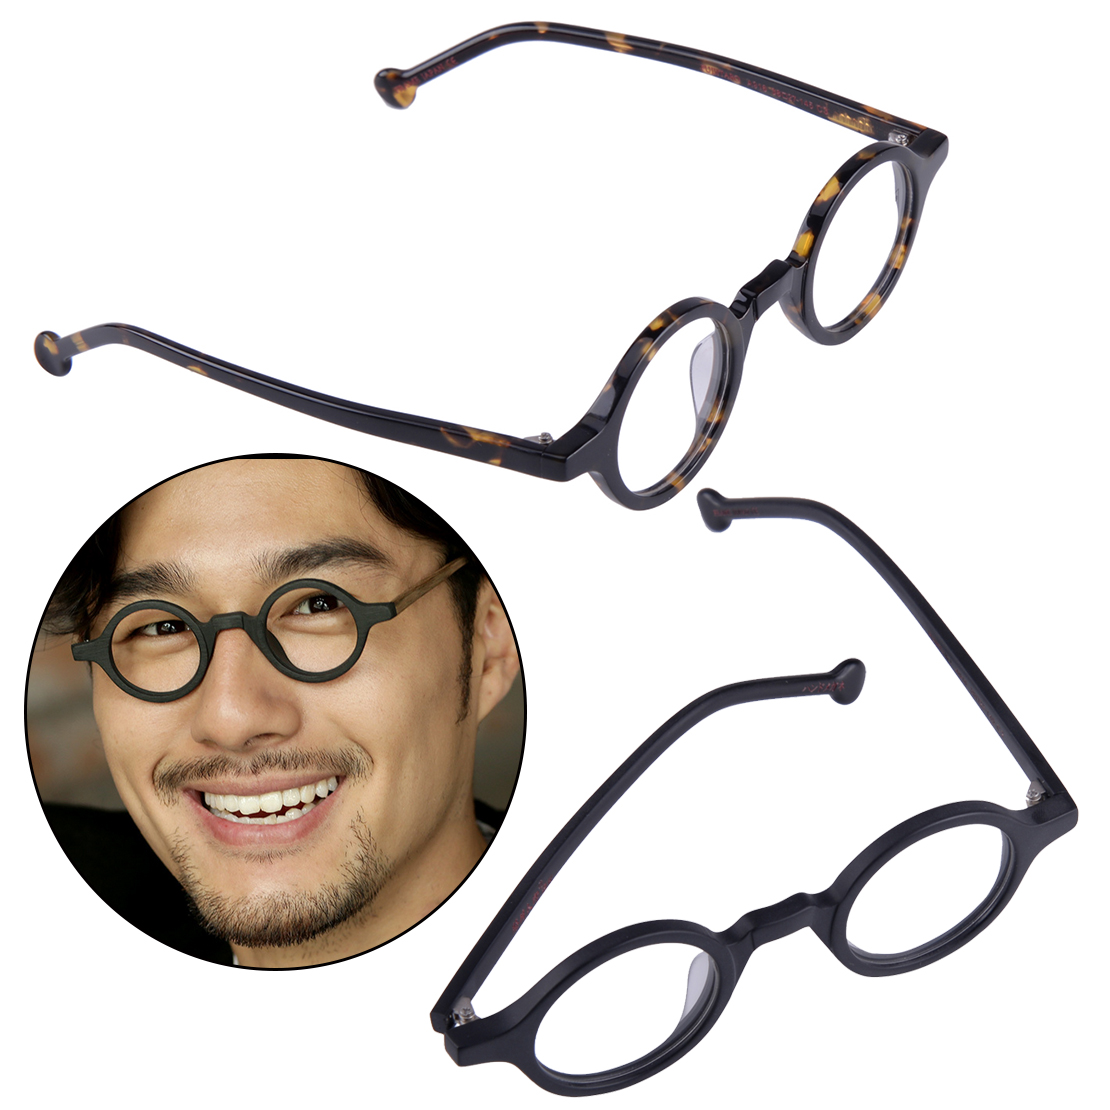 38mm Small Round Vintage Eyeglass Frames Spectacles